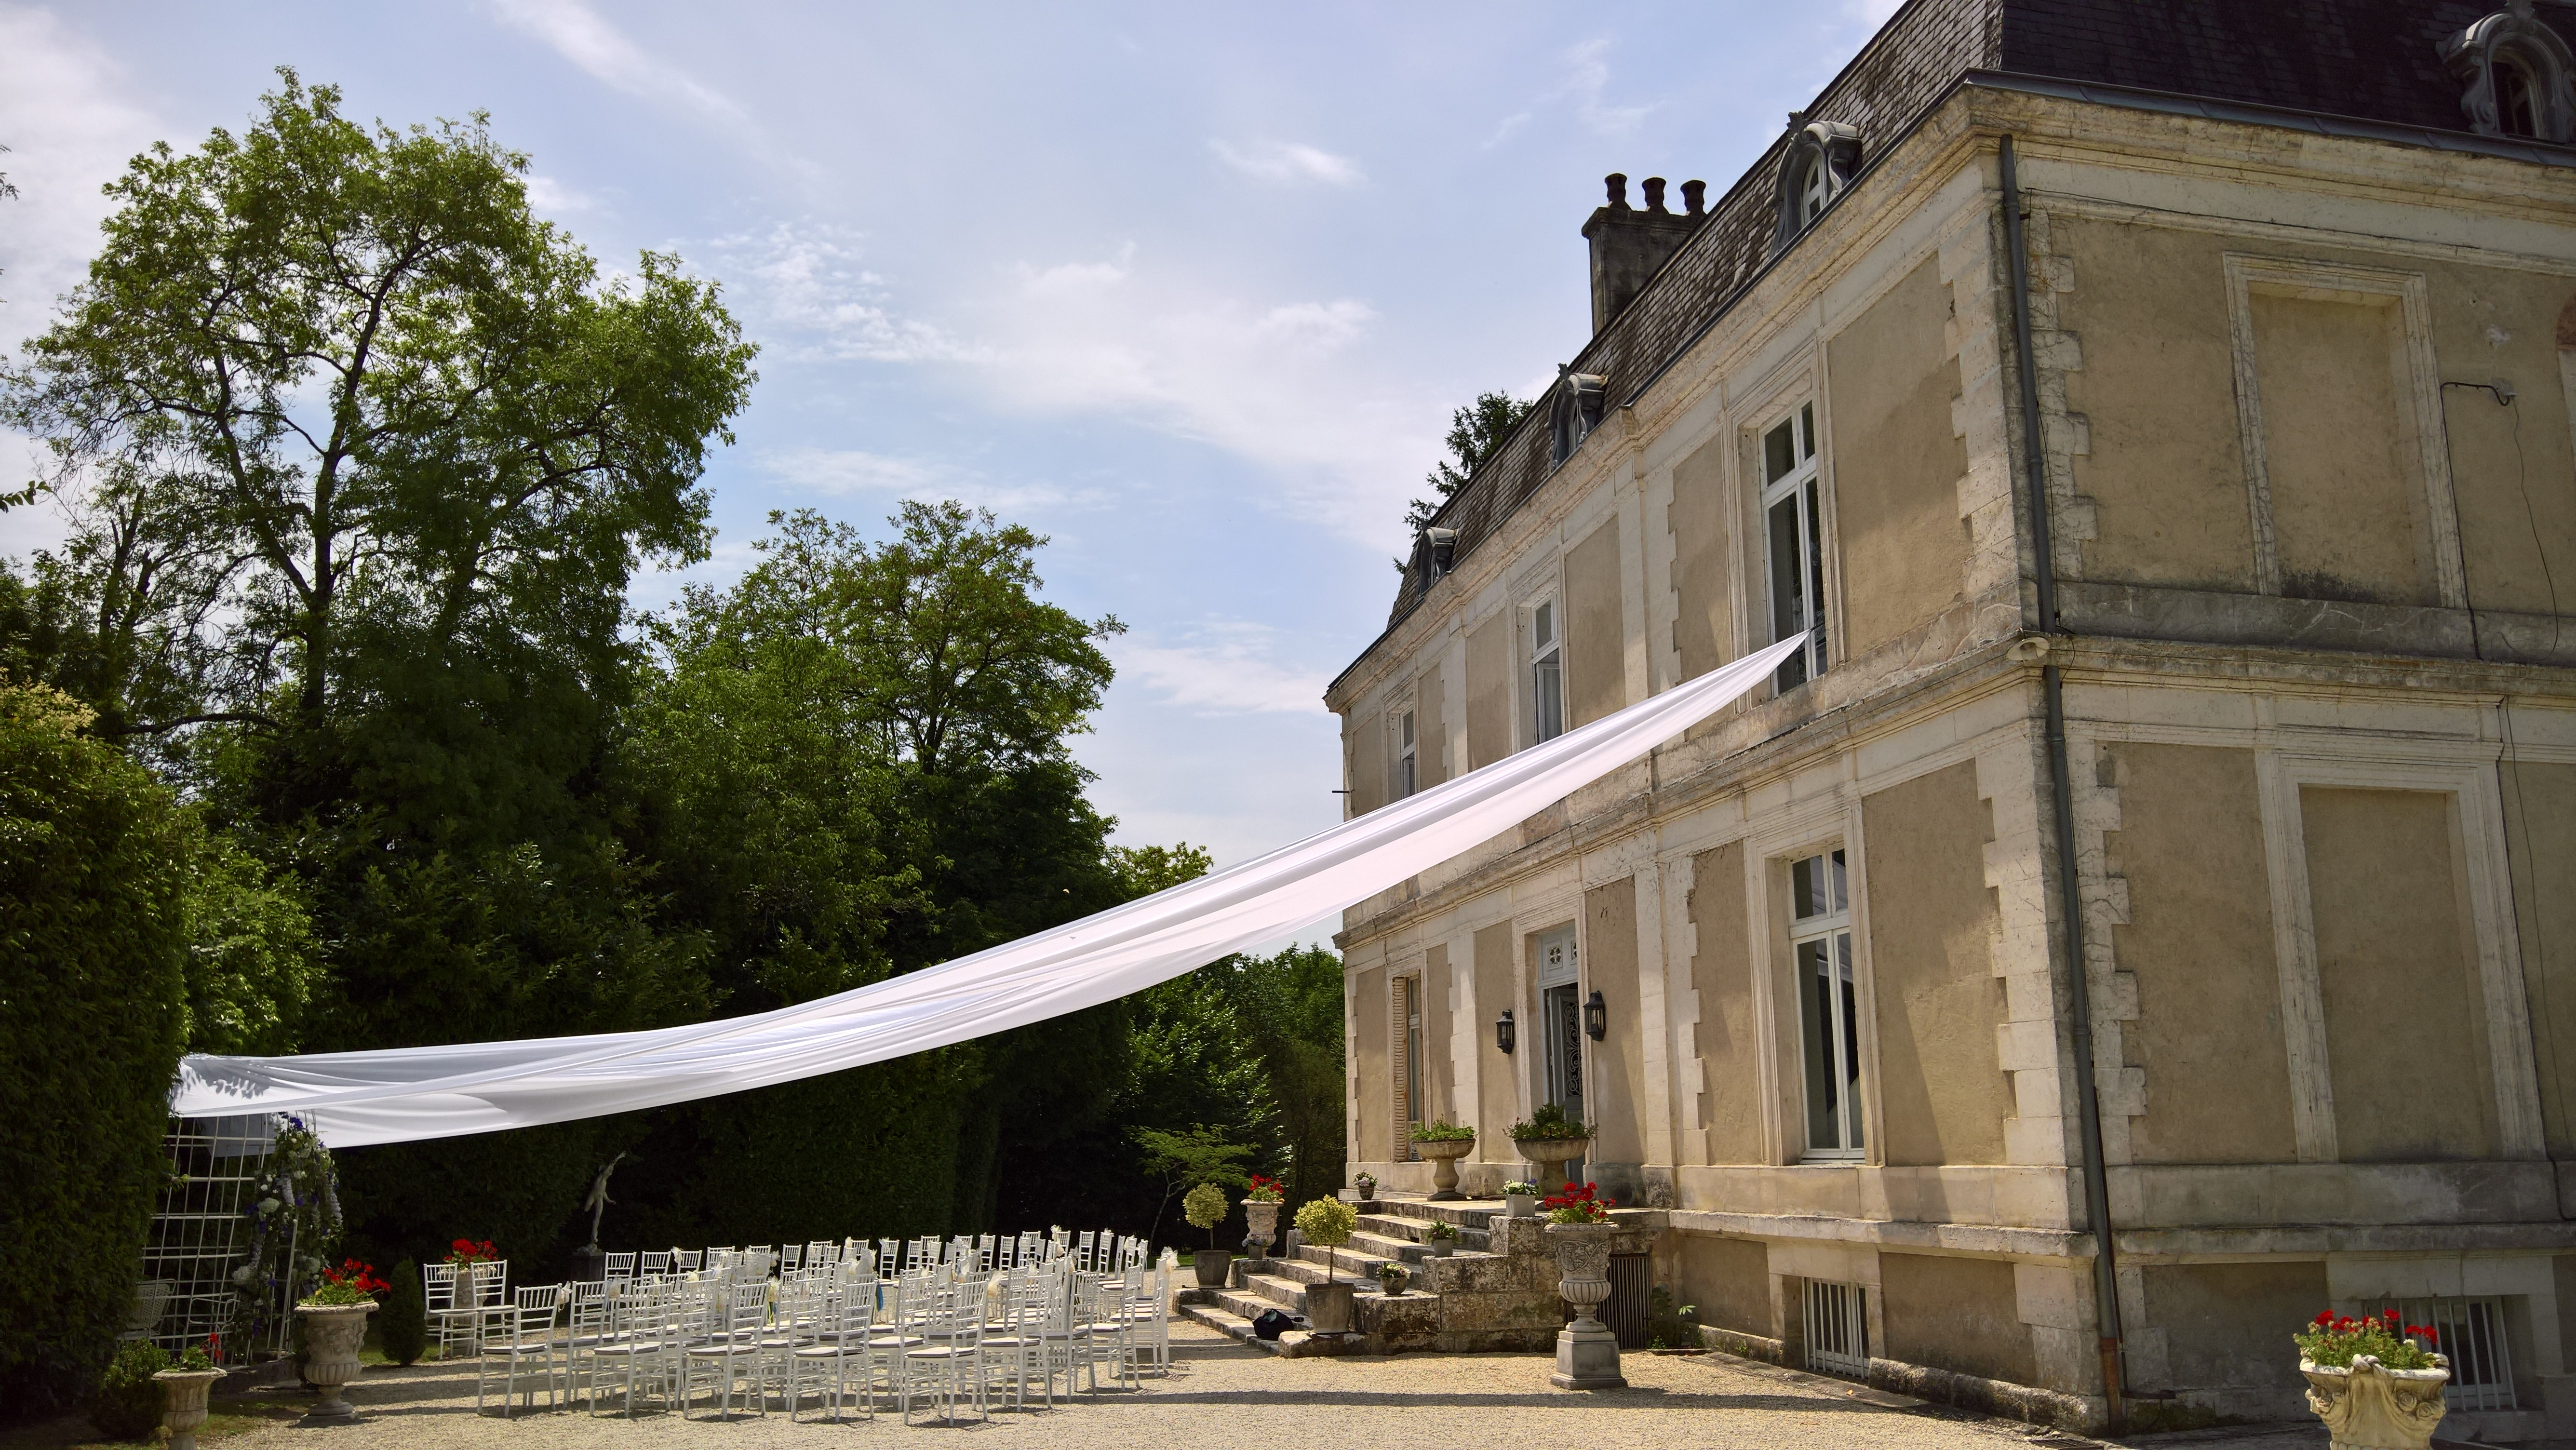 exclusif & romantic Chateau to rent in Dordogne